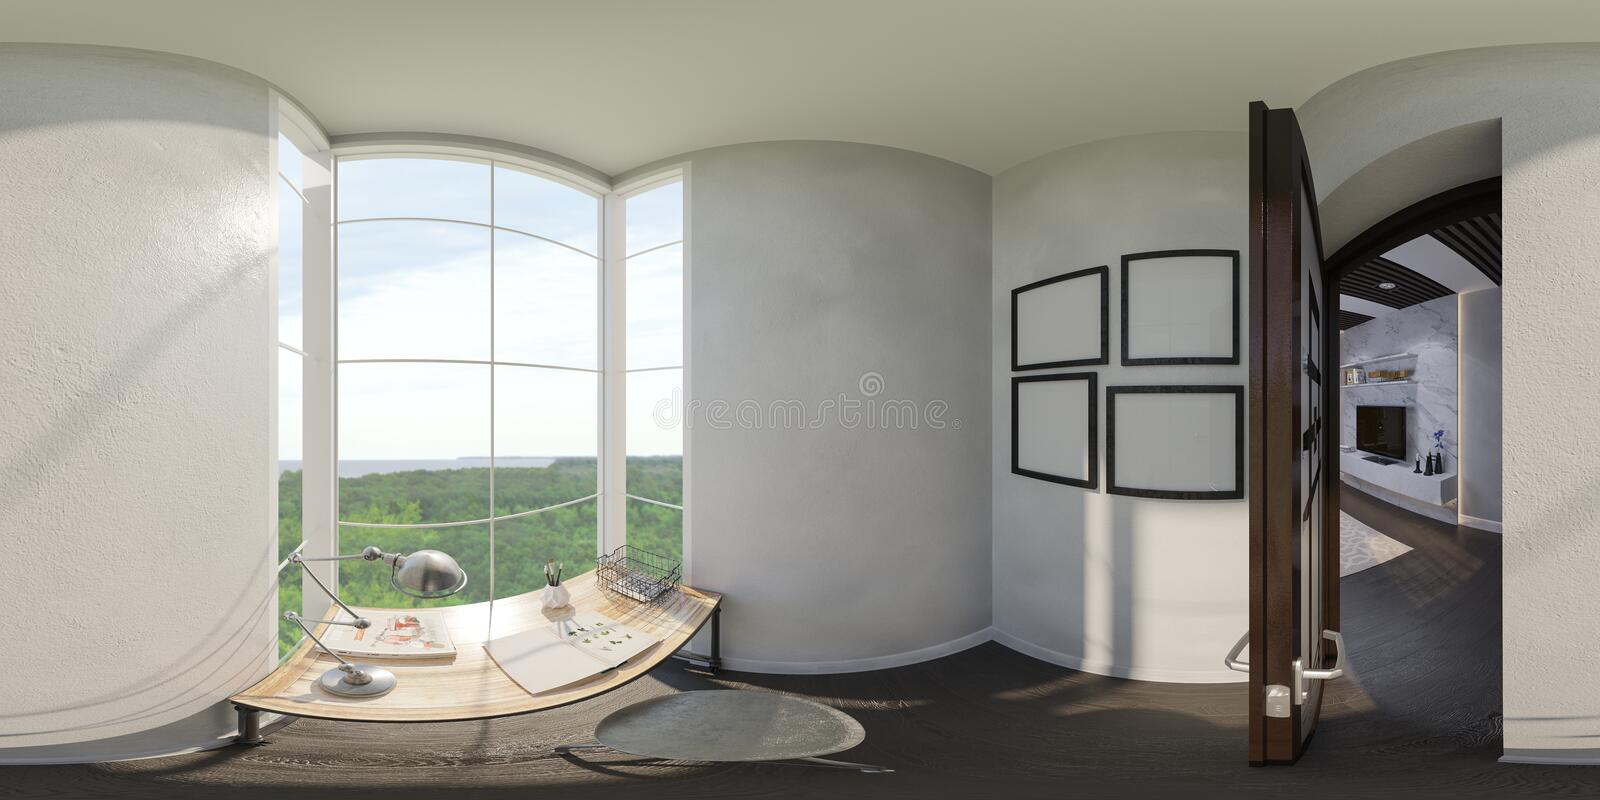 3d render of the interior design of a home office vector illustration